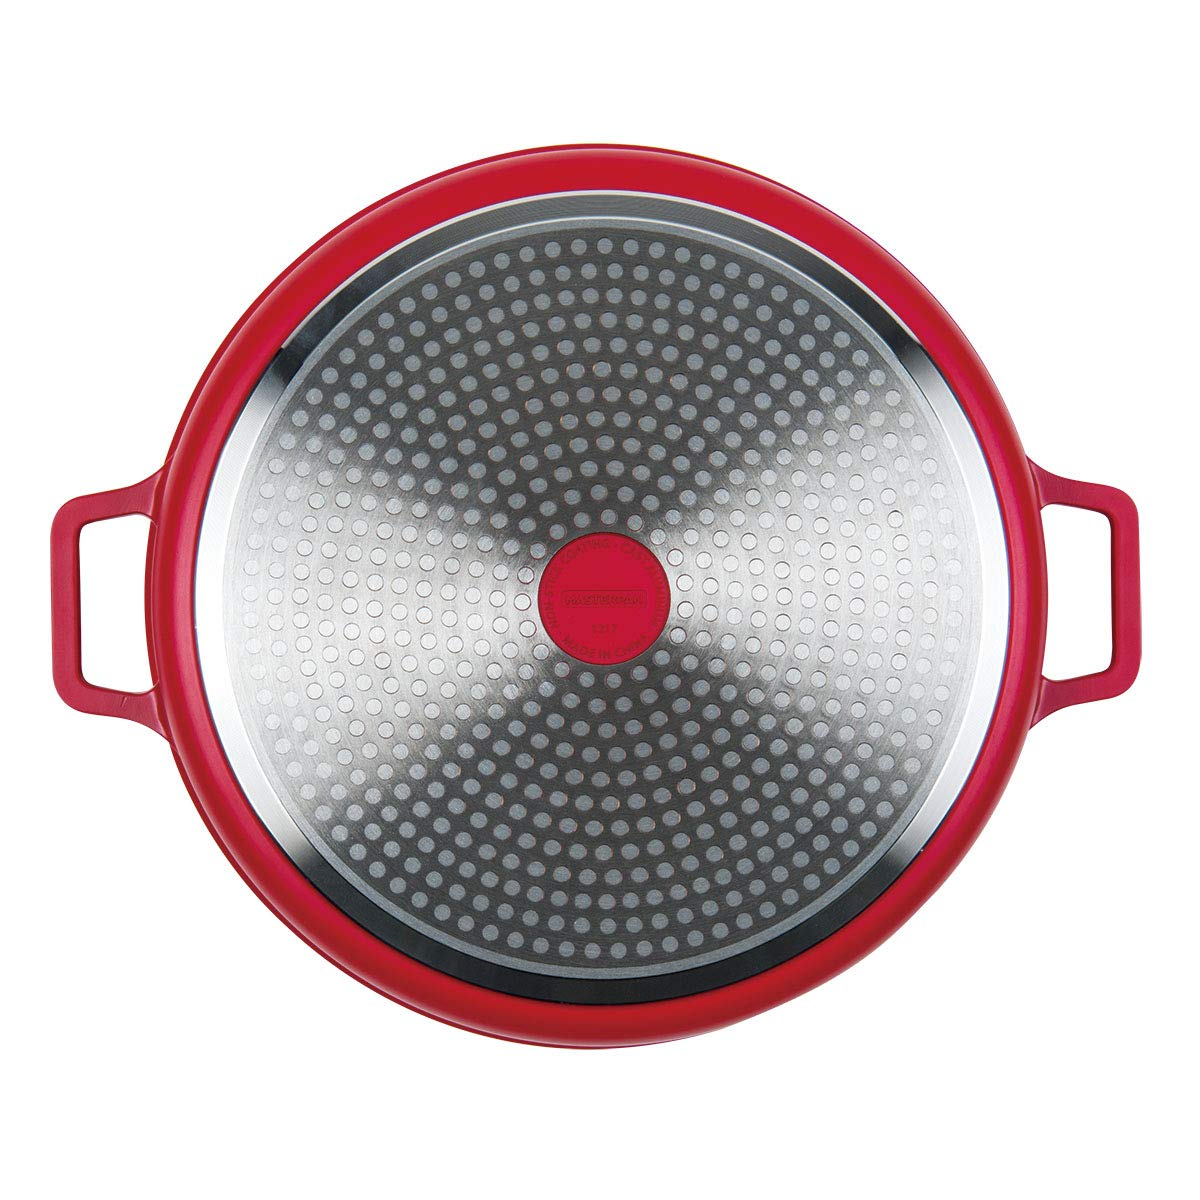 MasterPan Non-Stick Stovetop Oven Grill Pan with Heat-in Steam-Out Lid, nonstick cookware, 12'', Red, MP-106 by Master Pan (Image #4)